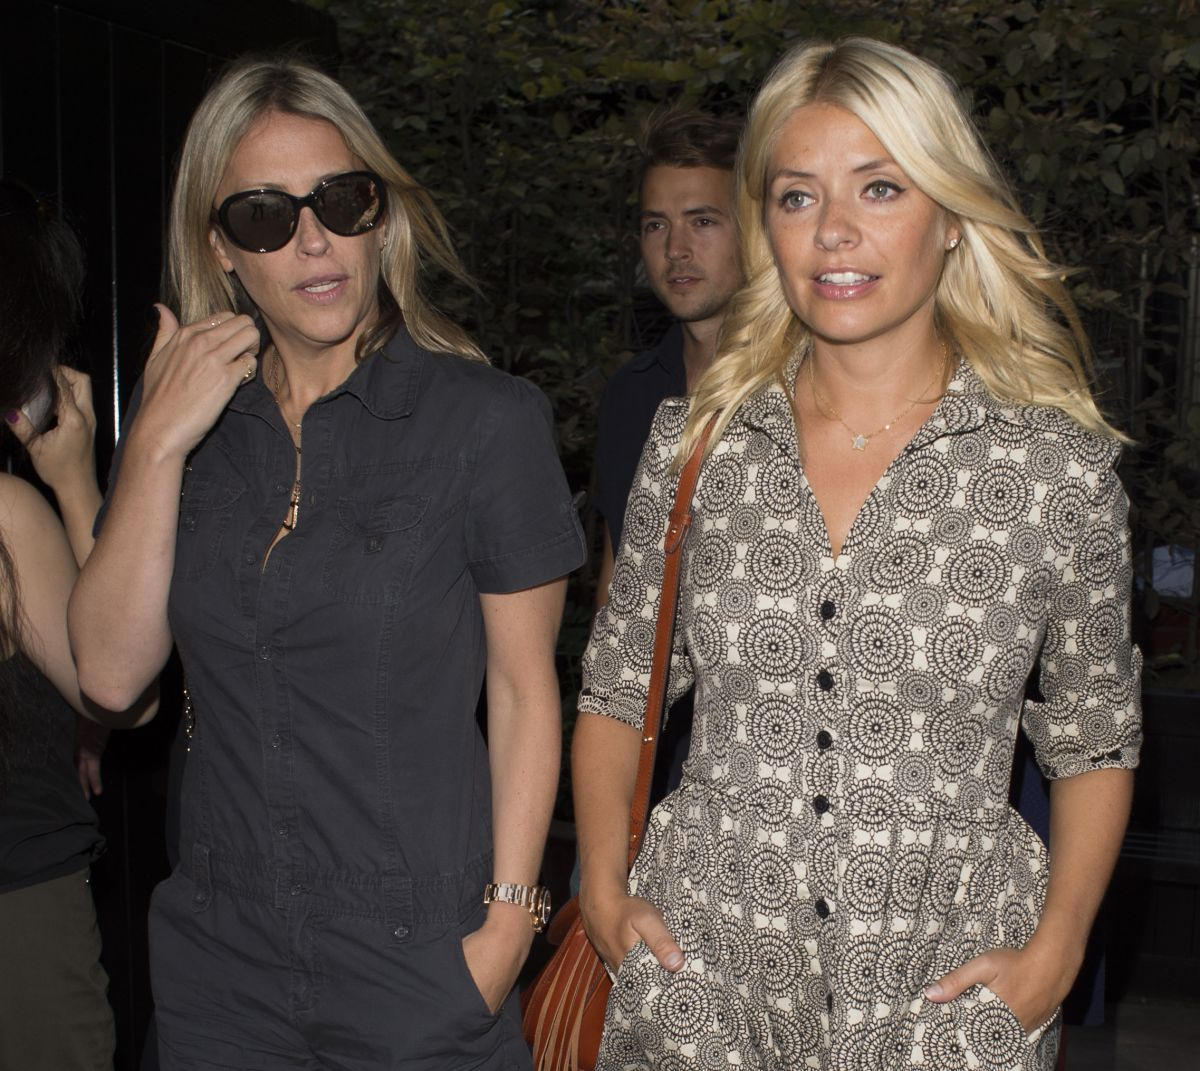 Photos of Holly Willoughby and Nicole Appleton at Chiltern Firehouse in London